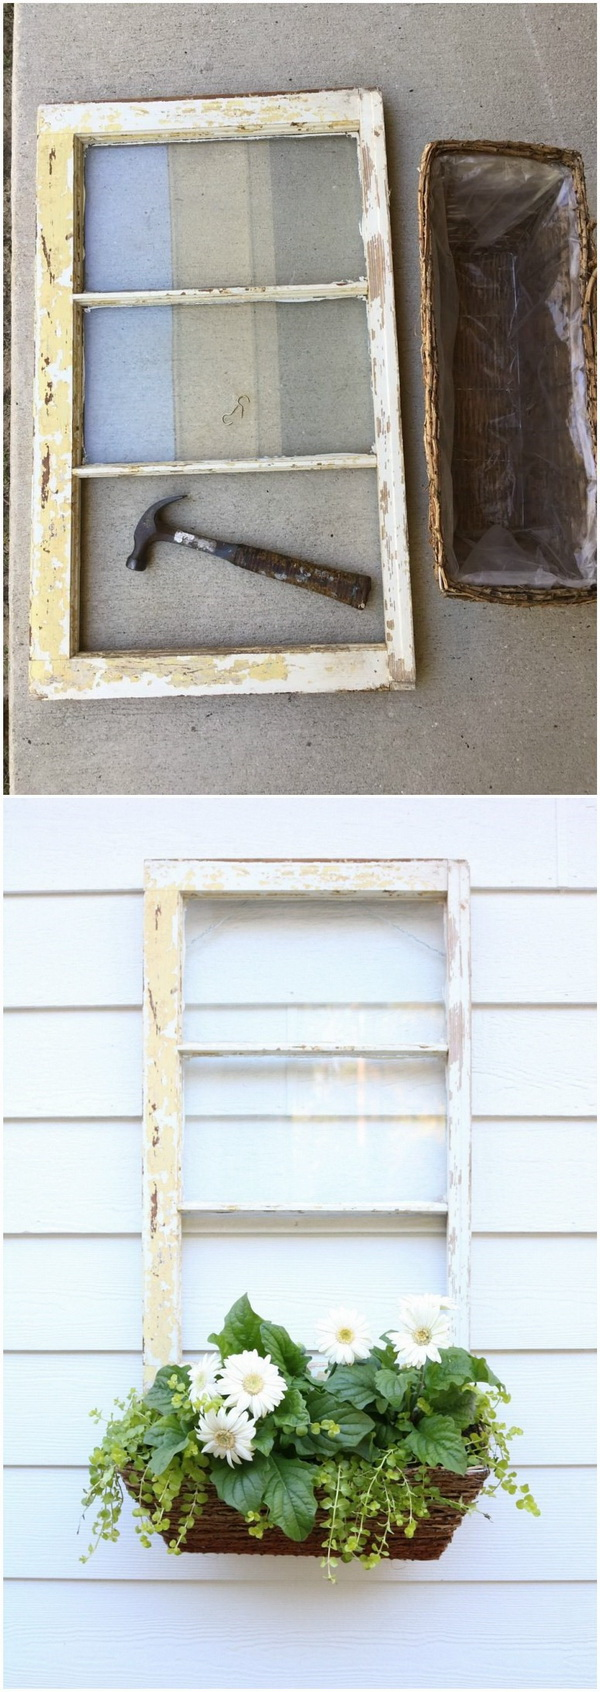 DIY Repurposed Window Box. Turn the old window fram into a lovely window box for your decor this spring season!